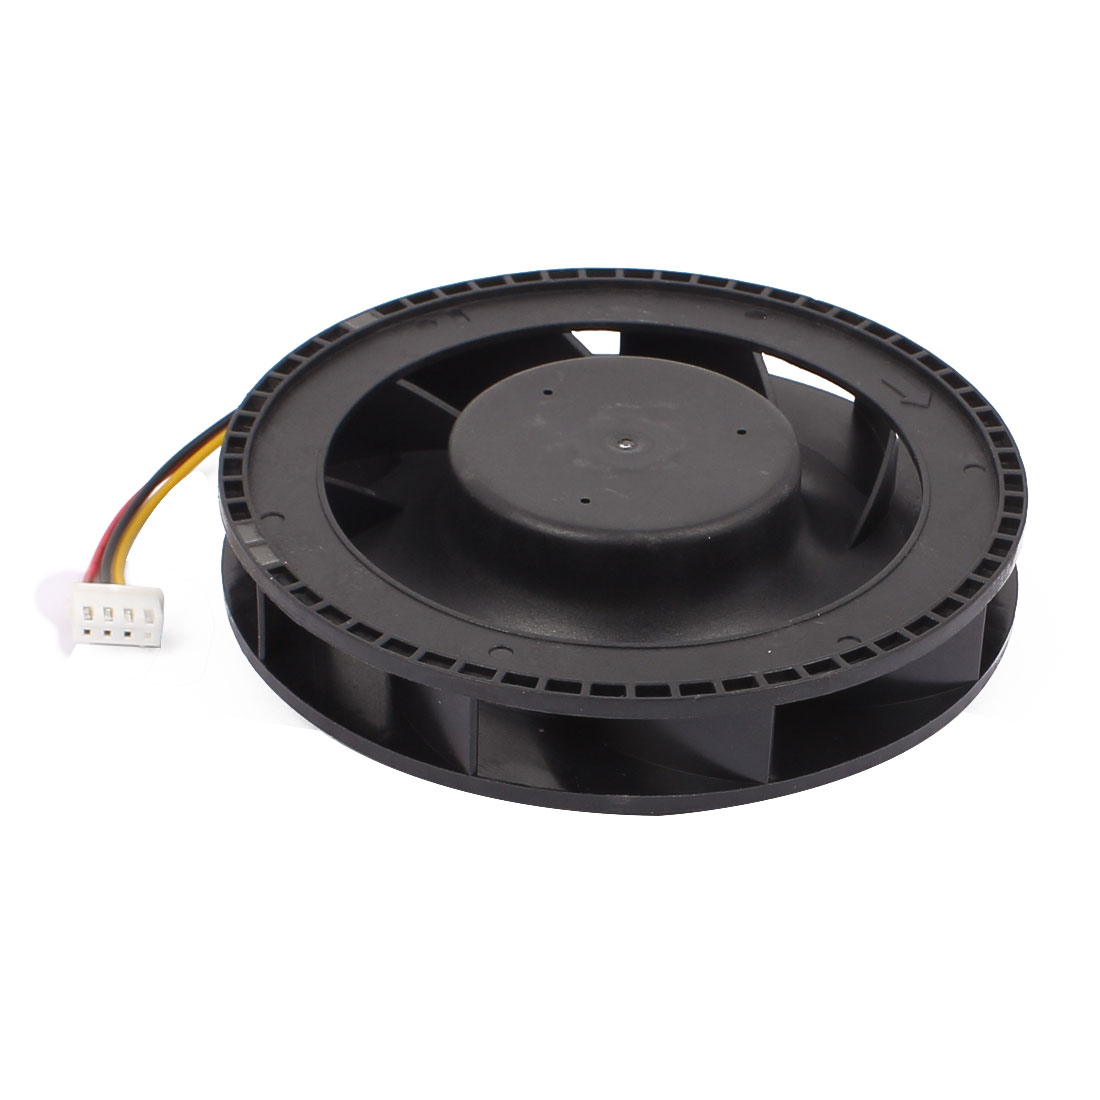 DC 12V 100mm x 25mm 5000RPM Quiet Brushless Blower Cooling Centrifugal Fan